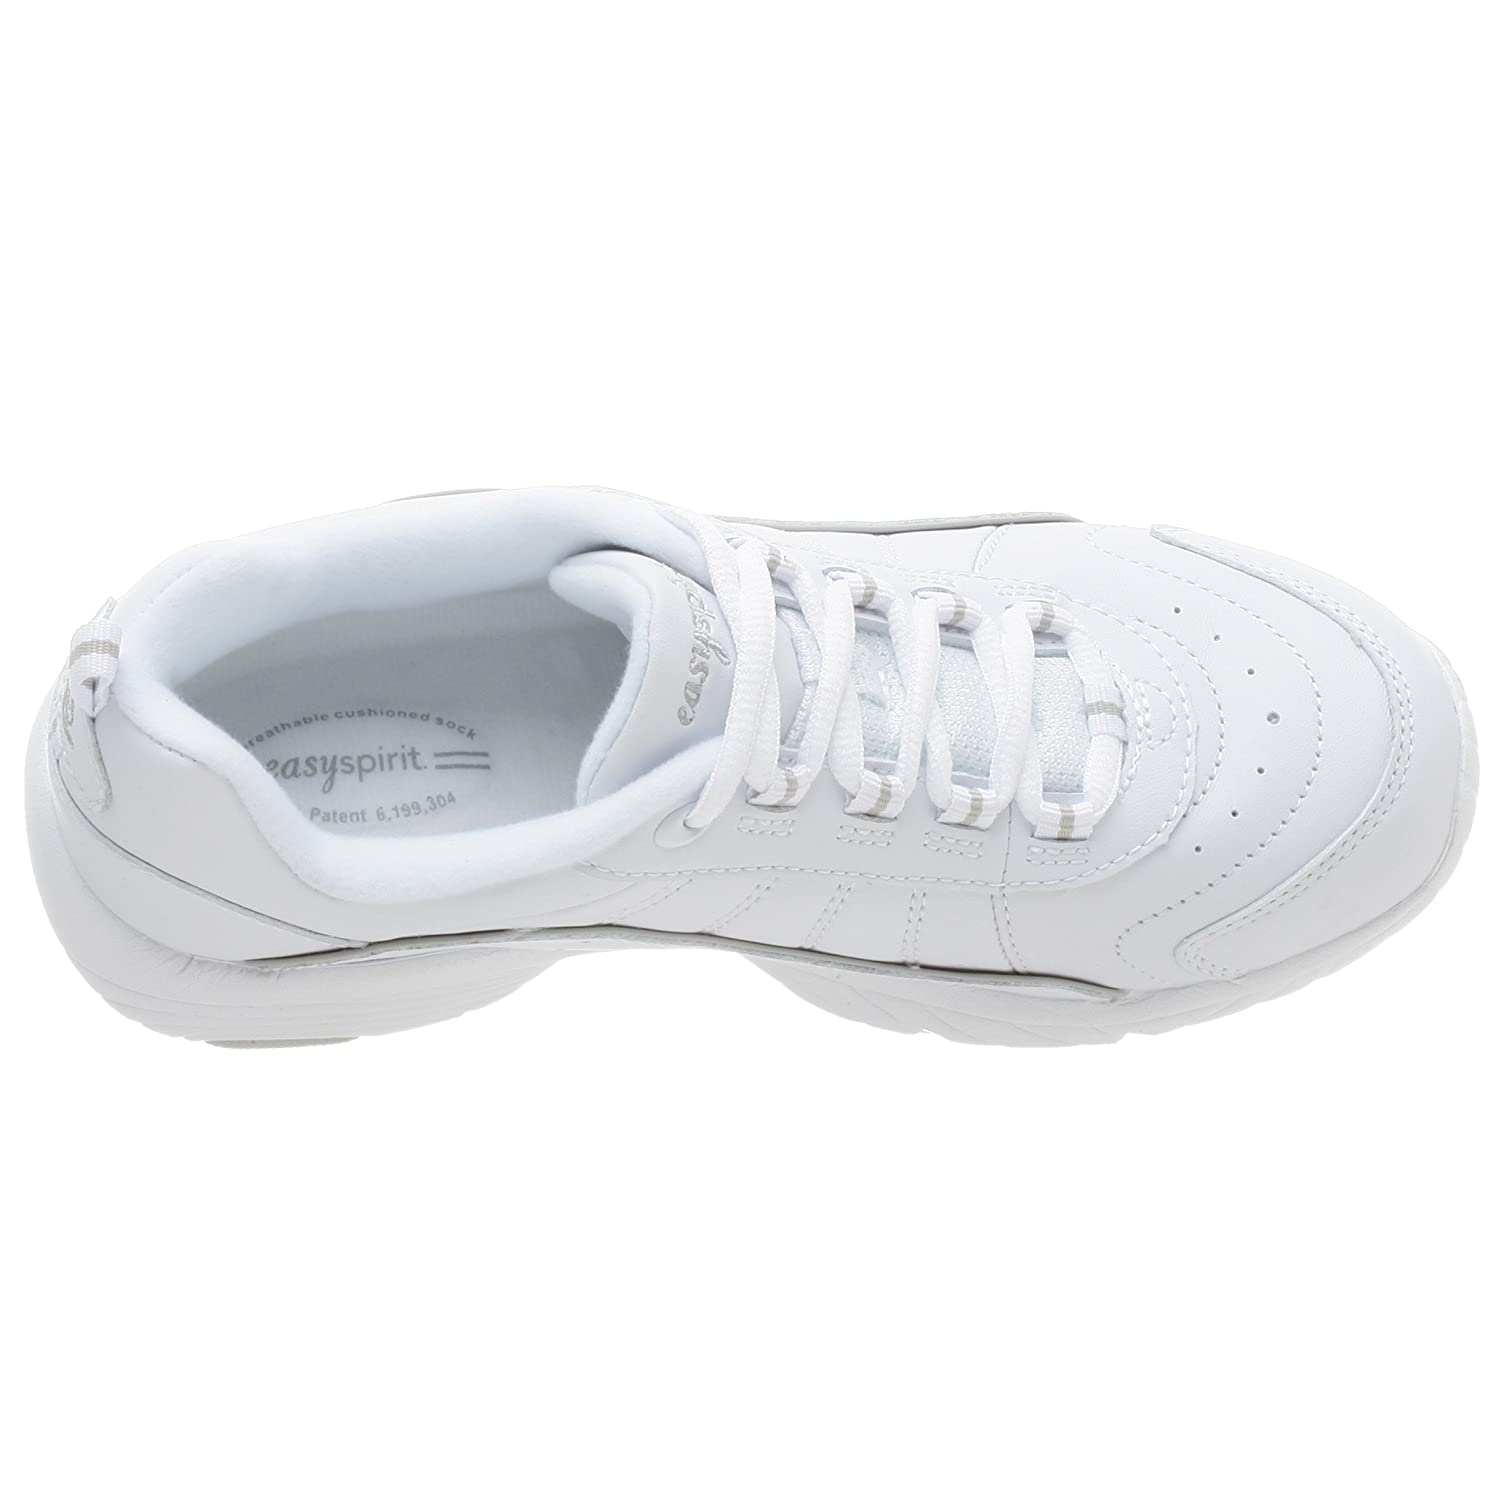 Easy Spirit Women's Punter Athletic Shoe B000Q92OXG 7 B(M) US|White/Light Grey